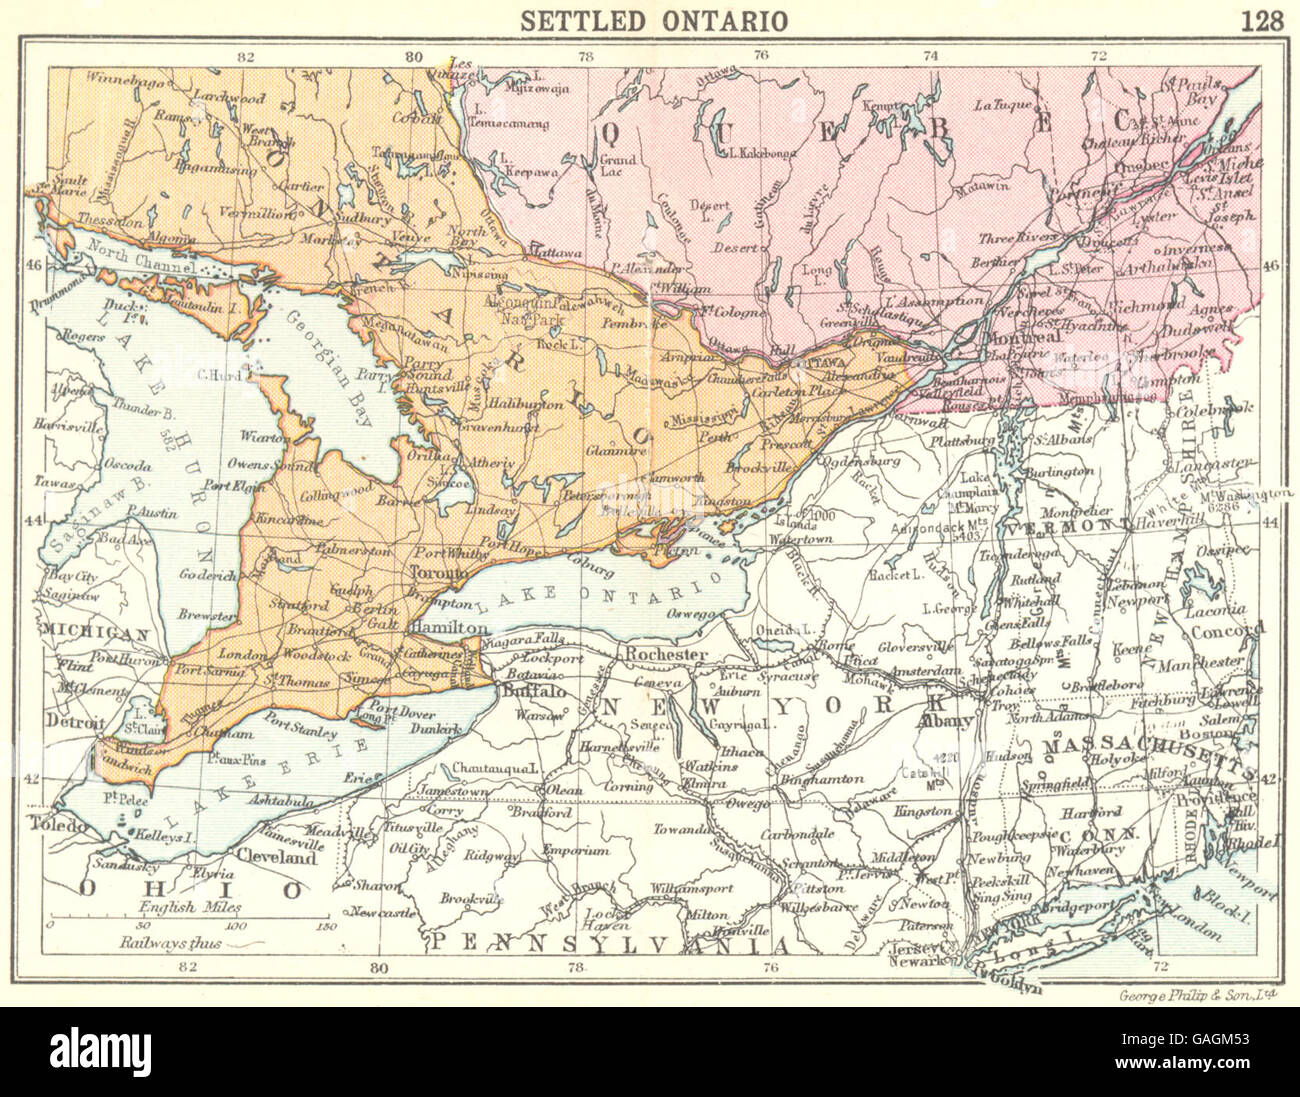 Small Map Of Canada.Canada Settled Ontario Small Map 1912 Stock Photo 109775823 Alamy